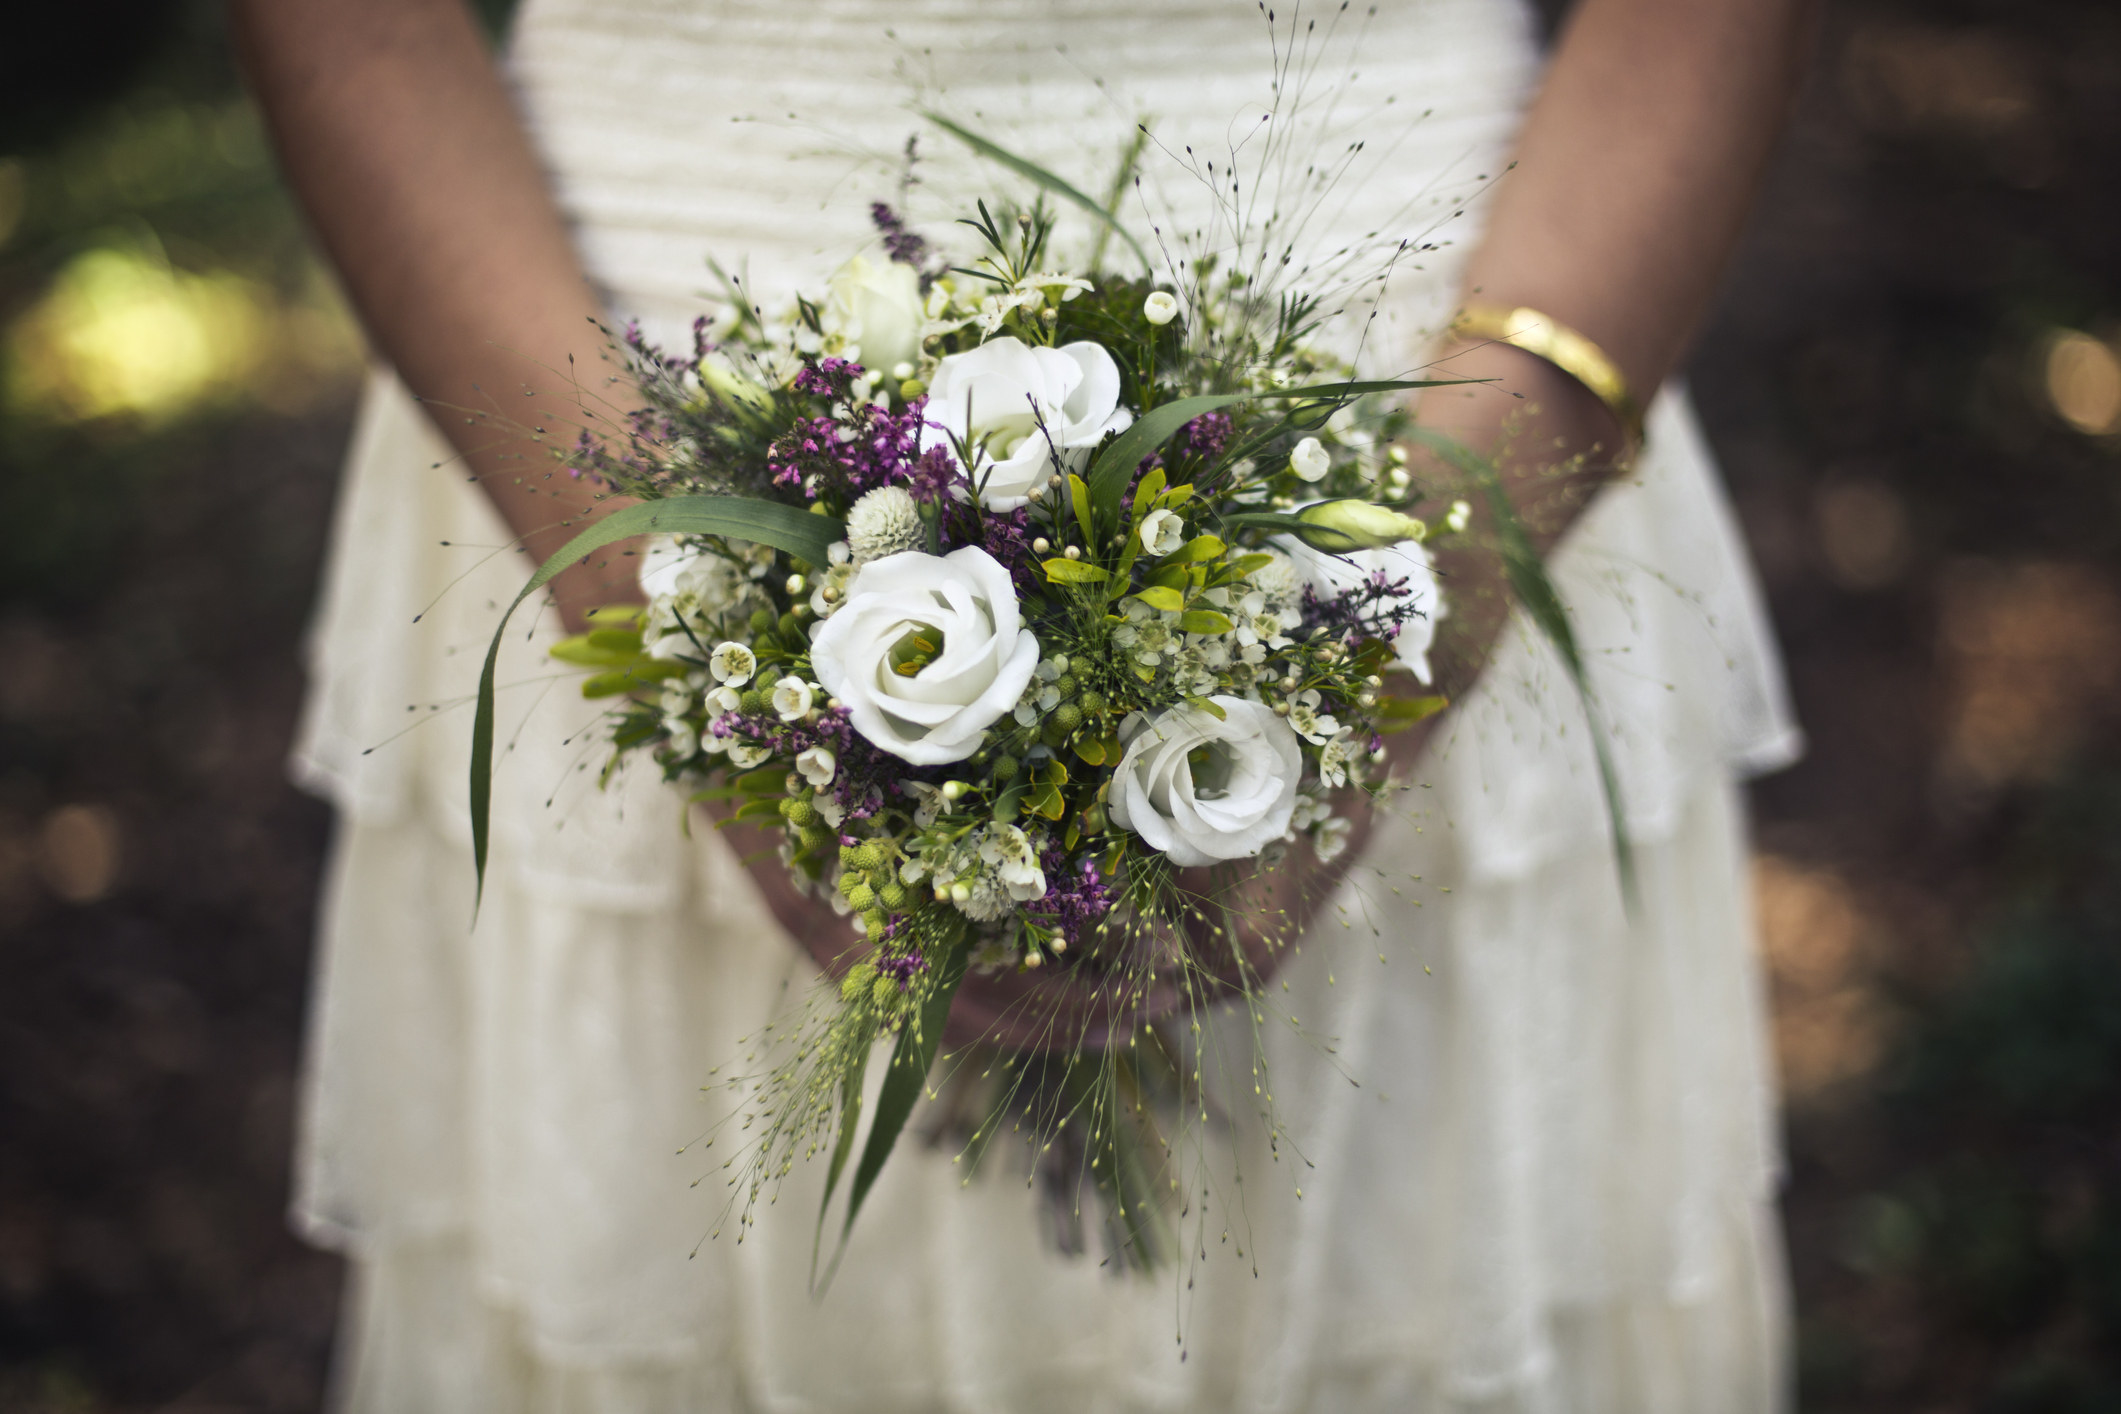 Bride holding a small bouquet